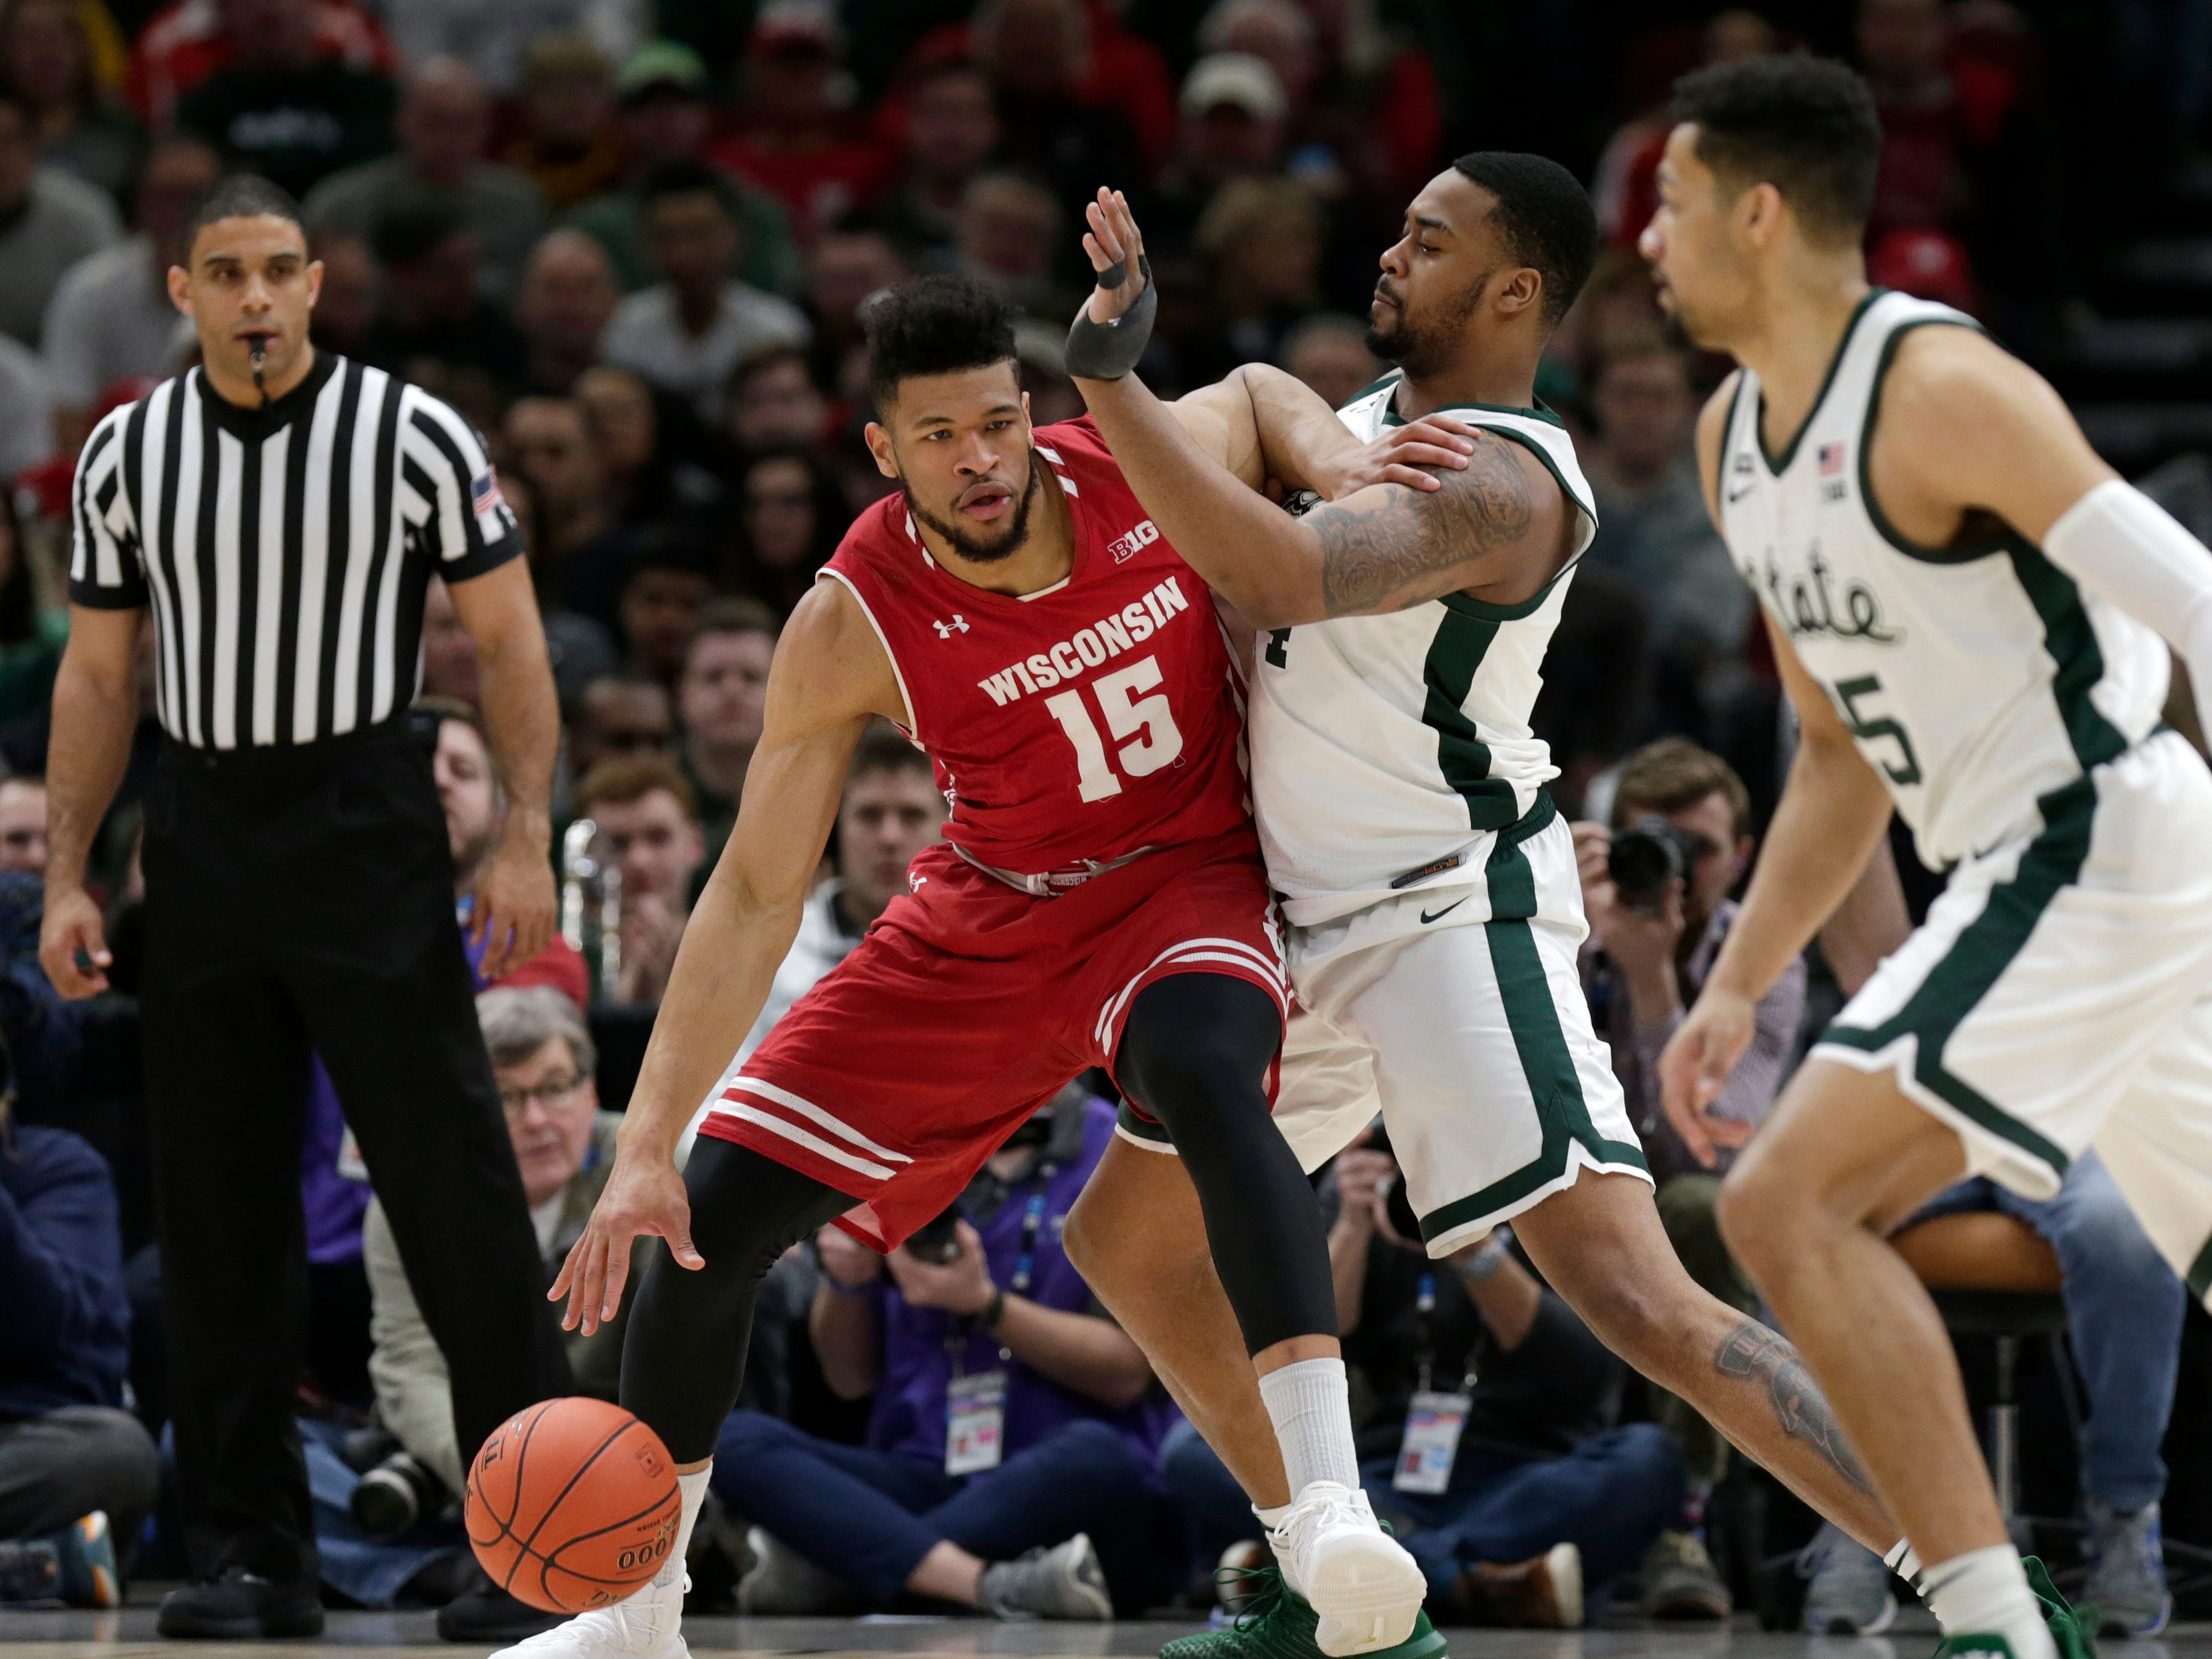 Wisconsin's Charles Thomas IV drives against Michigan State's Nick Ward during the first half.